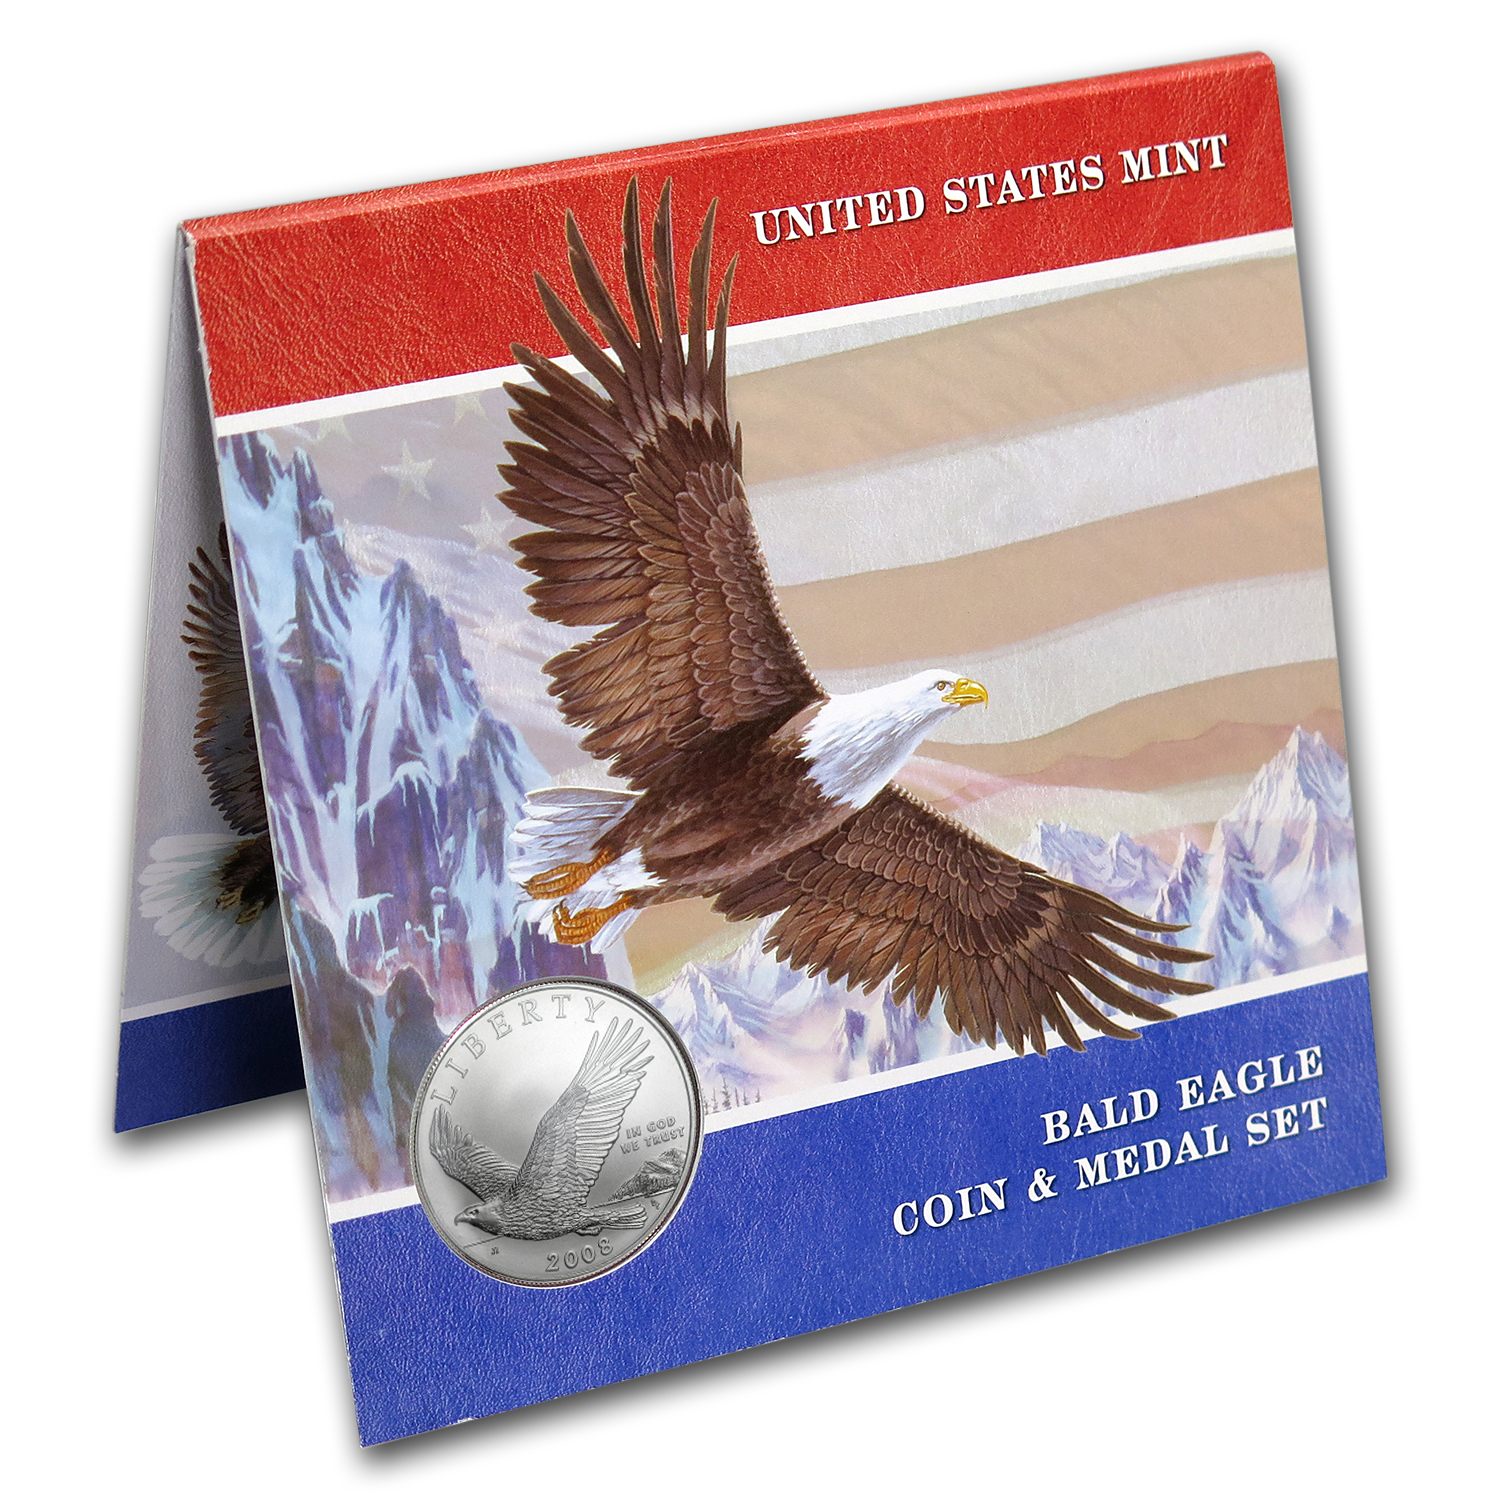 2008 Bald Eagle Coin and Medal Set BU (Booklet)